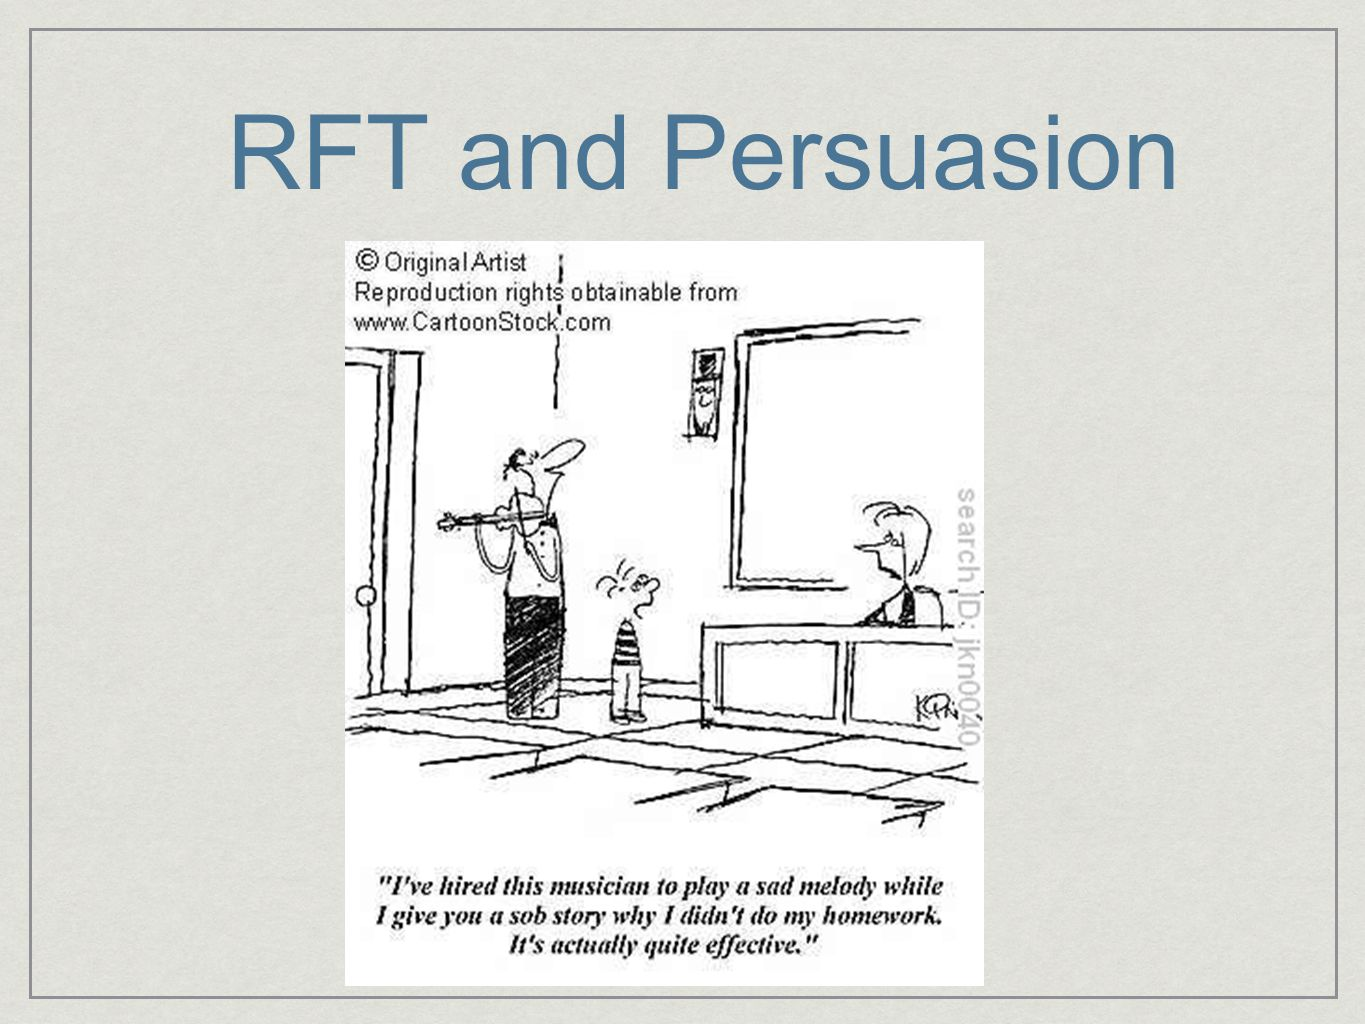 RFT and Persuasion